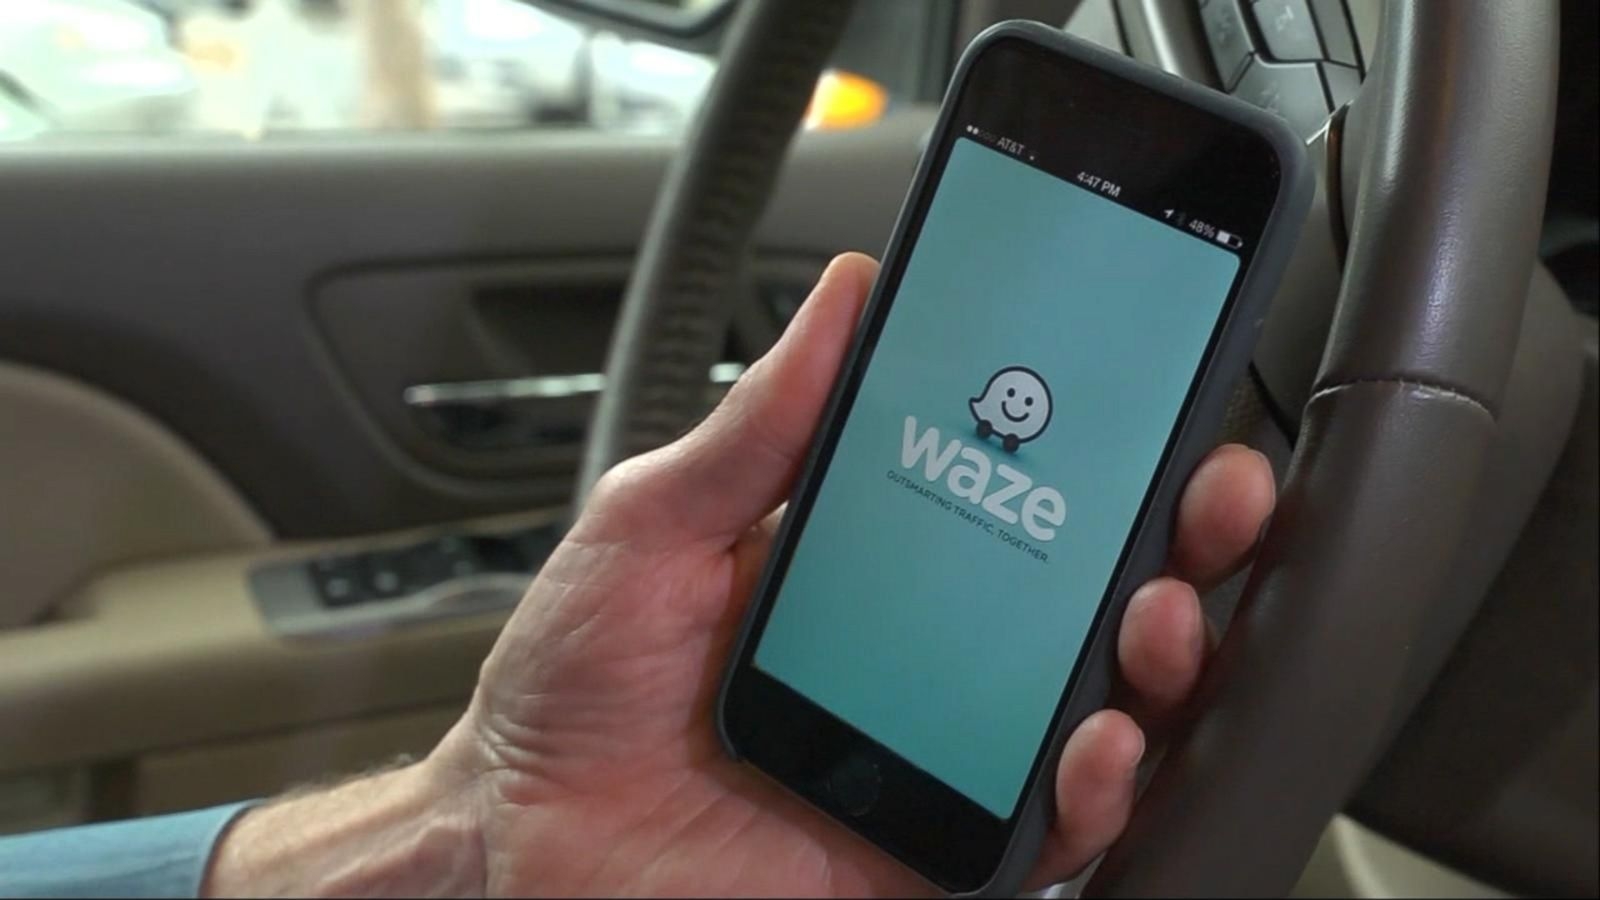 'Google Waze' Ride Share Service